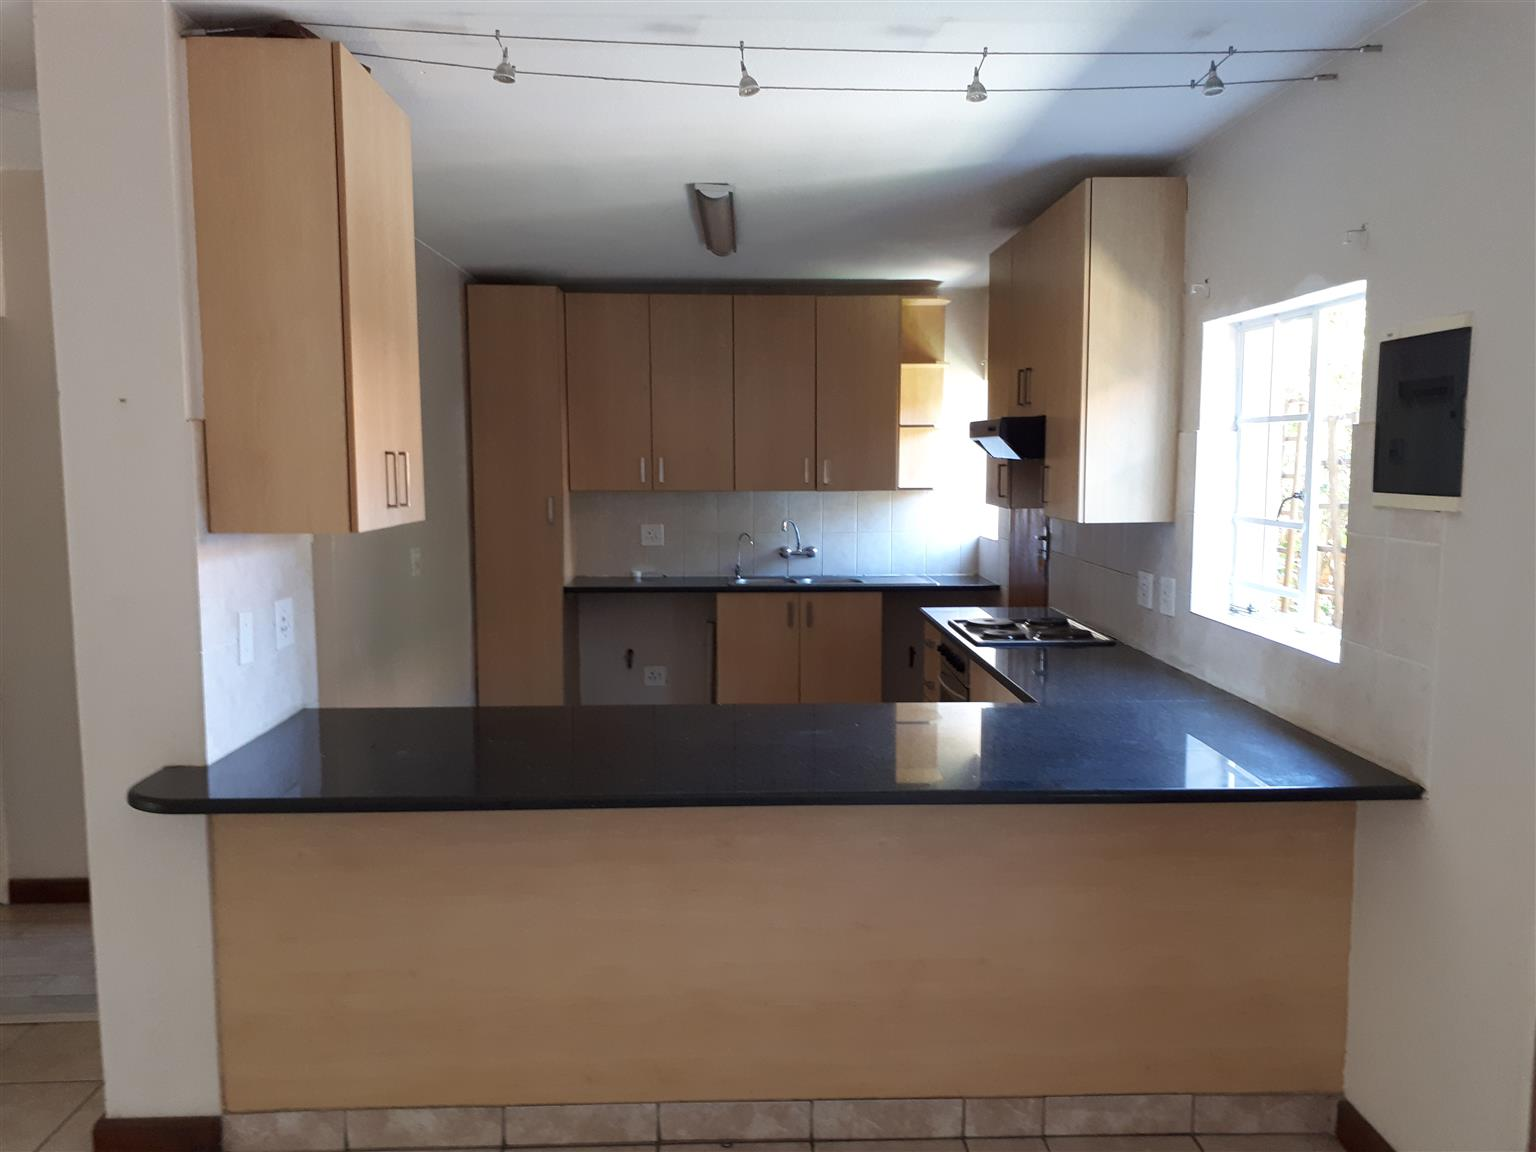 3 BED TOWNHOUSE TO RENT IN SIX FOUNTAINS (SILVER LAKES) RESIDENTIAL LIFESTYLE ESTATE